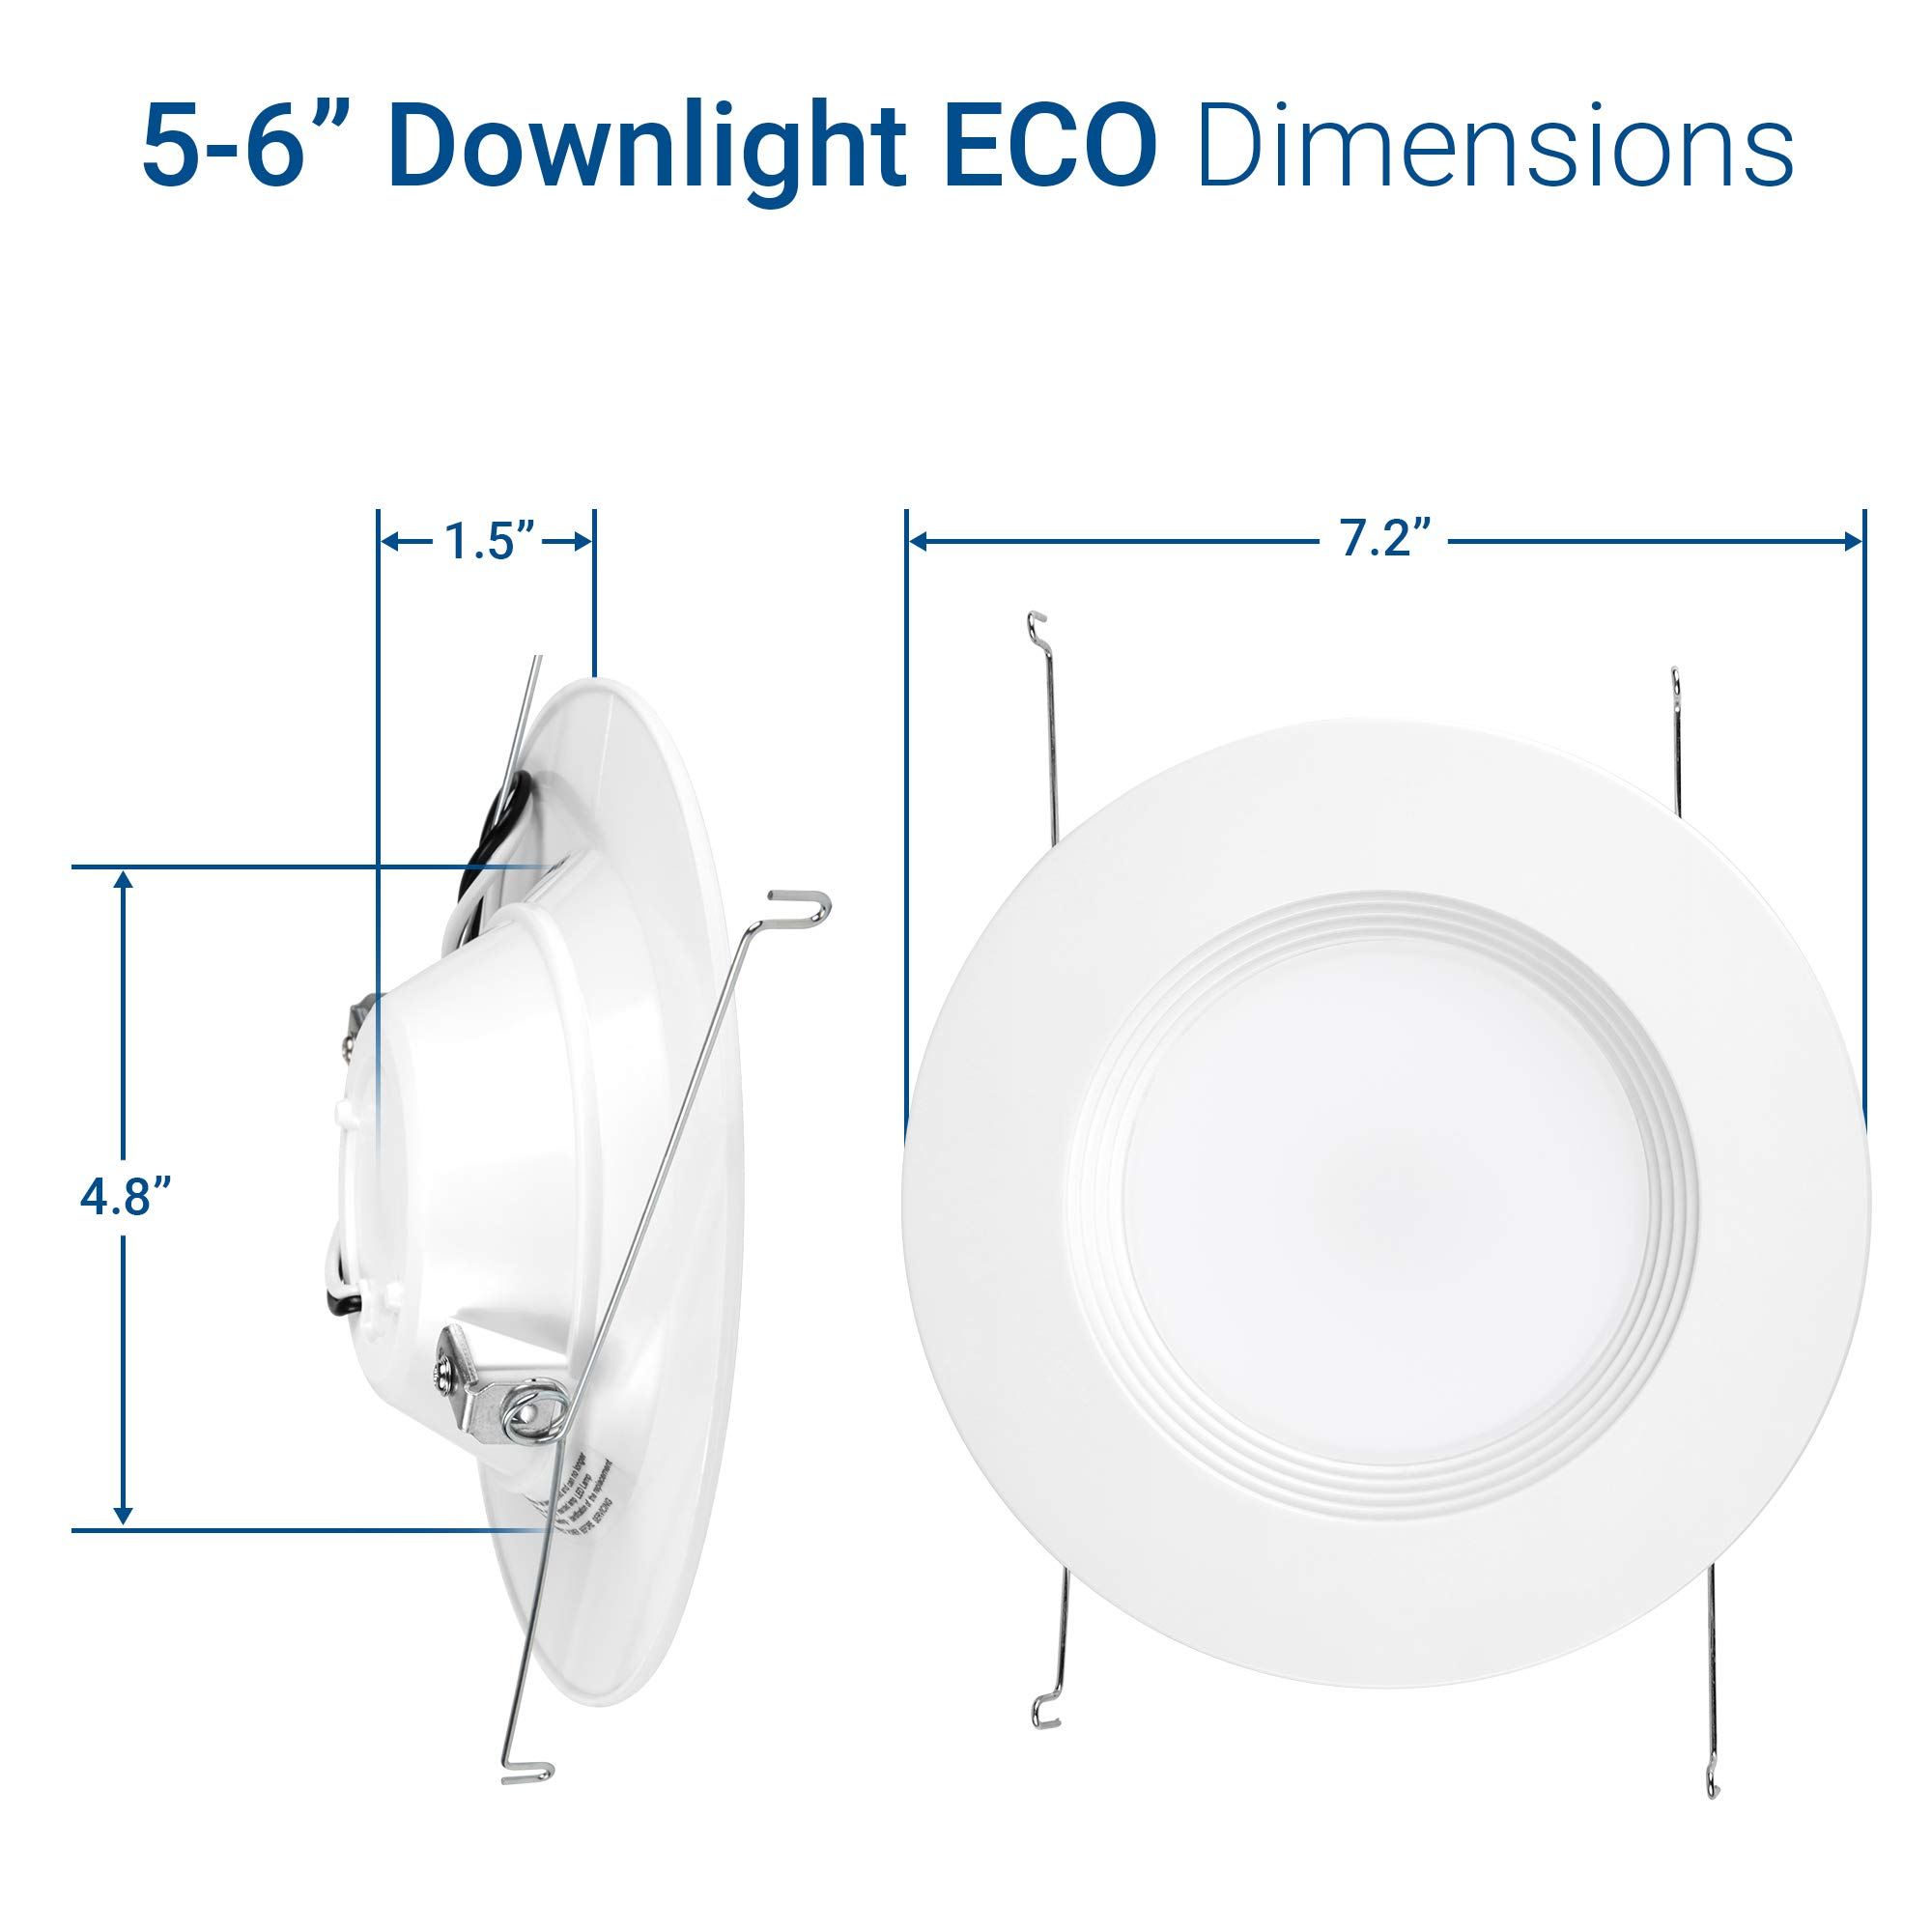 """Hyperikon 6"""" LED Recessed Lights (5 Inch Compatible) 14W Downlight Dimmable (75W Equiv.) LED Retrofit Lighting Fixture, Ceiling Recess Can Lights, Halo Retrofit Baffle Trim, 3000K, CRI84, UL (16 Pack) by Hyperikon (Image #10)"""